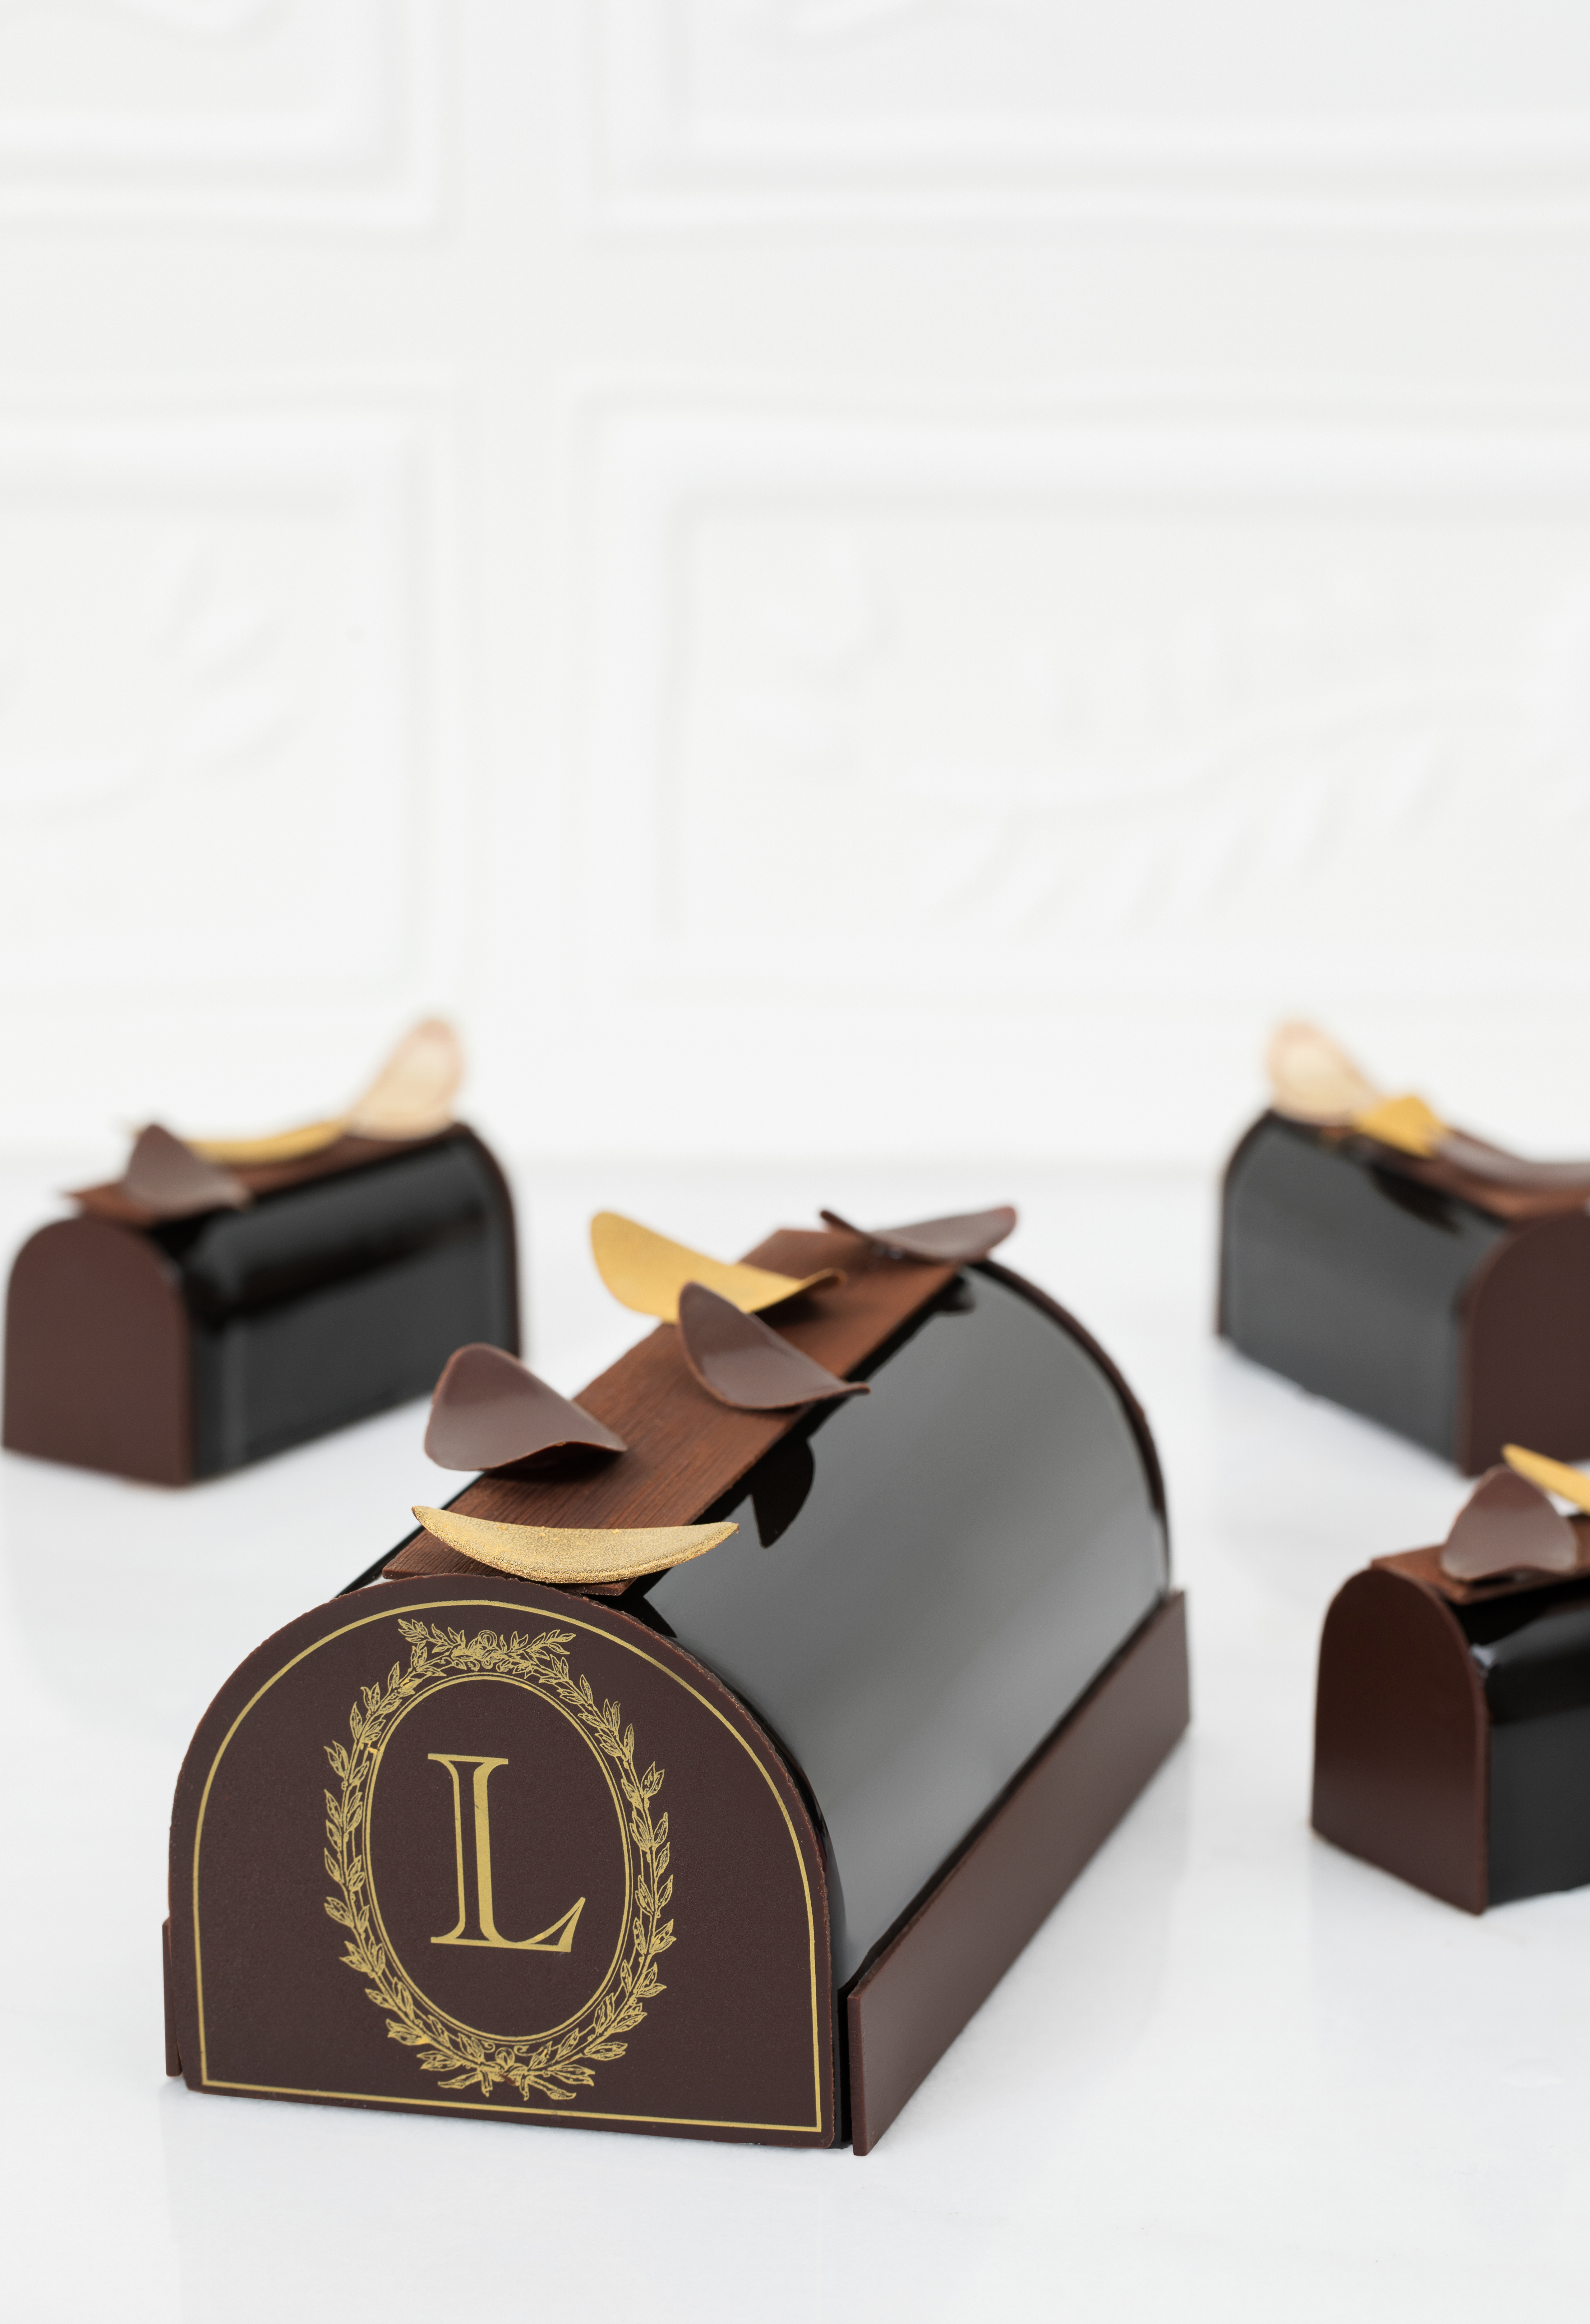 Four beautifully crafted Yule logs vie for your affections: hazelnut, rose-raspberry, chocolate, and almond. (Image: Courtesy Laduree)<p></p>